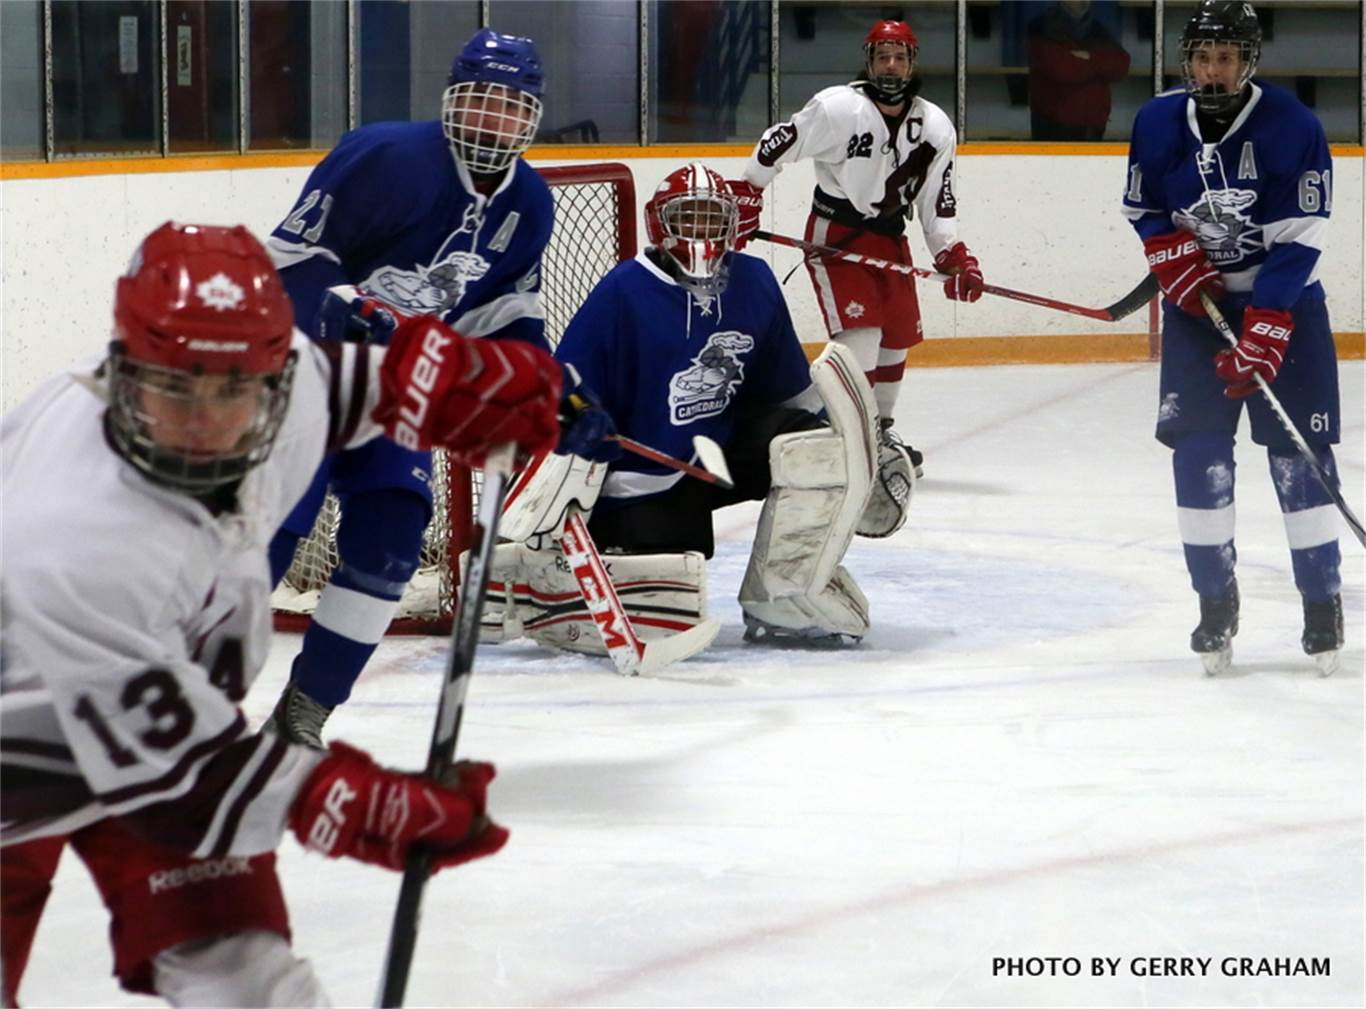 Gaels Lose To Titans In Power Play